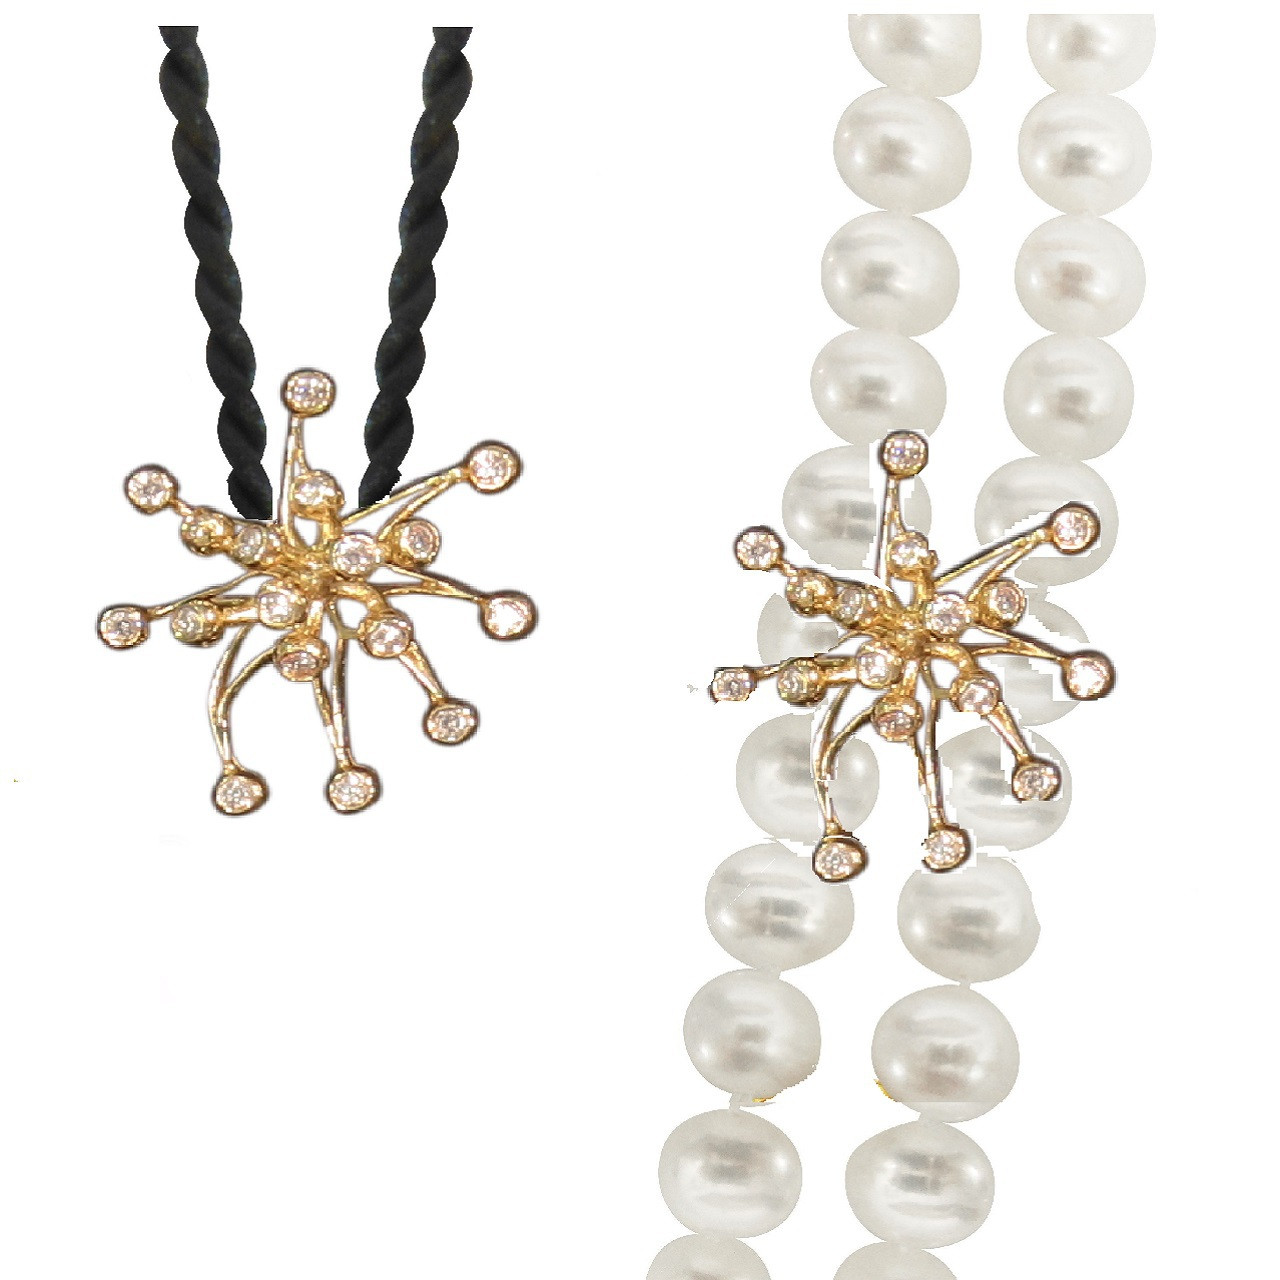 Two of many ways to wear the fireworks pearl enhancer. You can use 2 or 3 cords to color coordinate your outfits.